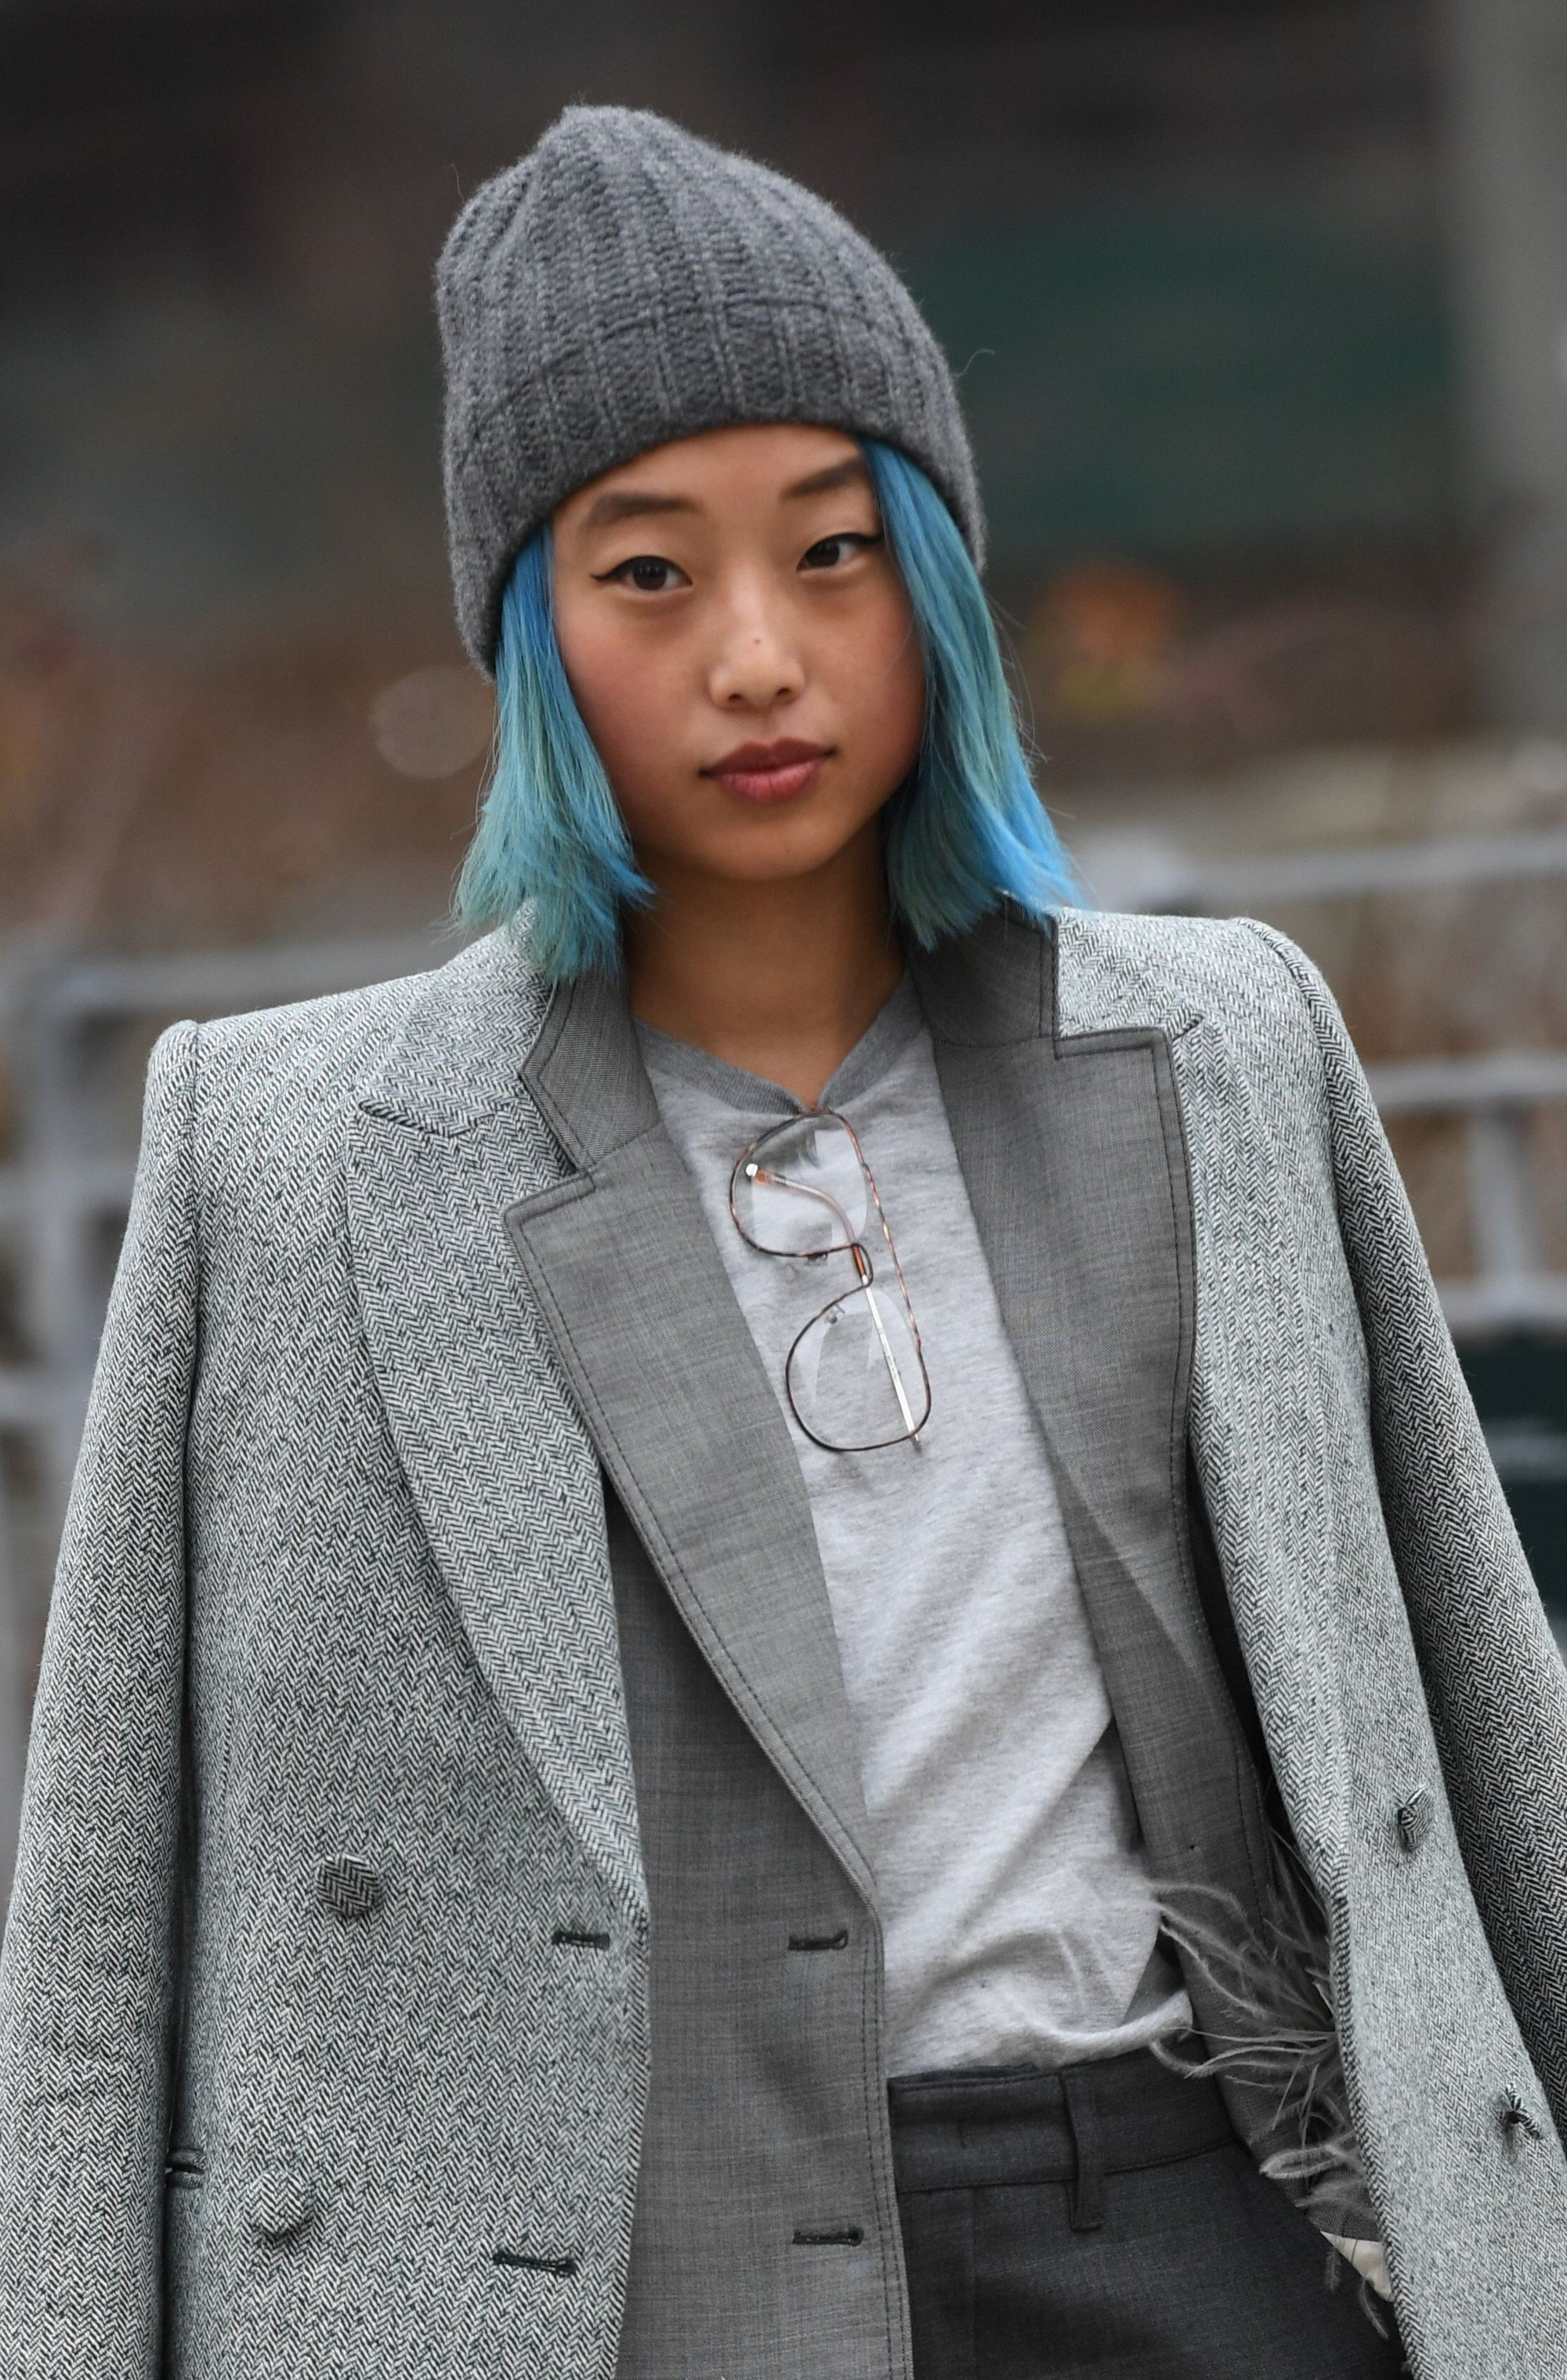 2019 hair colour trends: Street style shot of a woman with a blue bob, wearing a grey beanie and a grey outfit